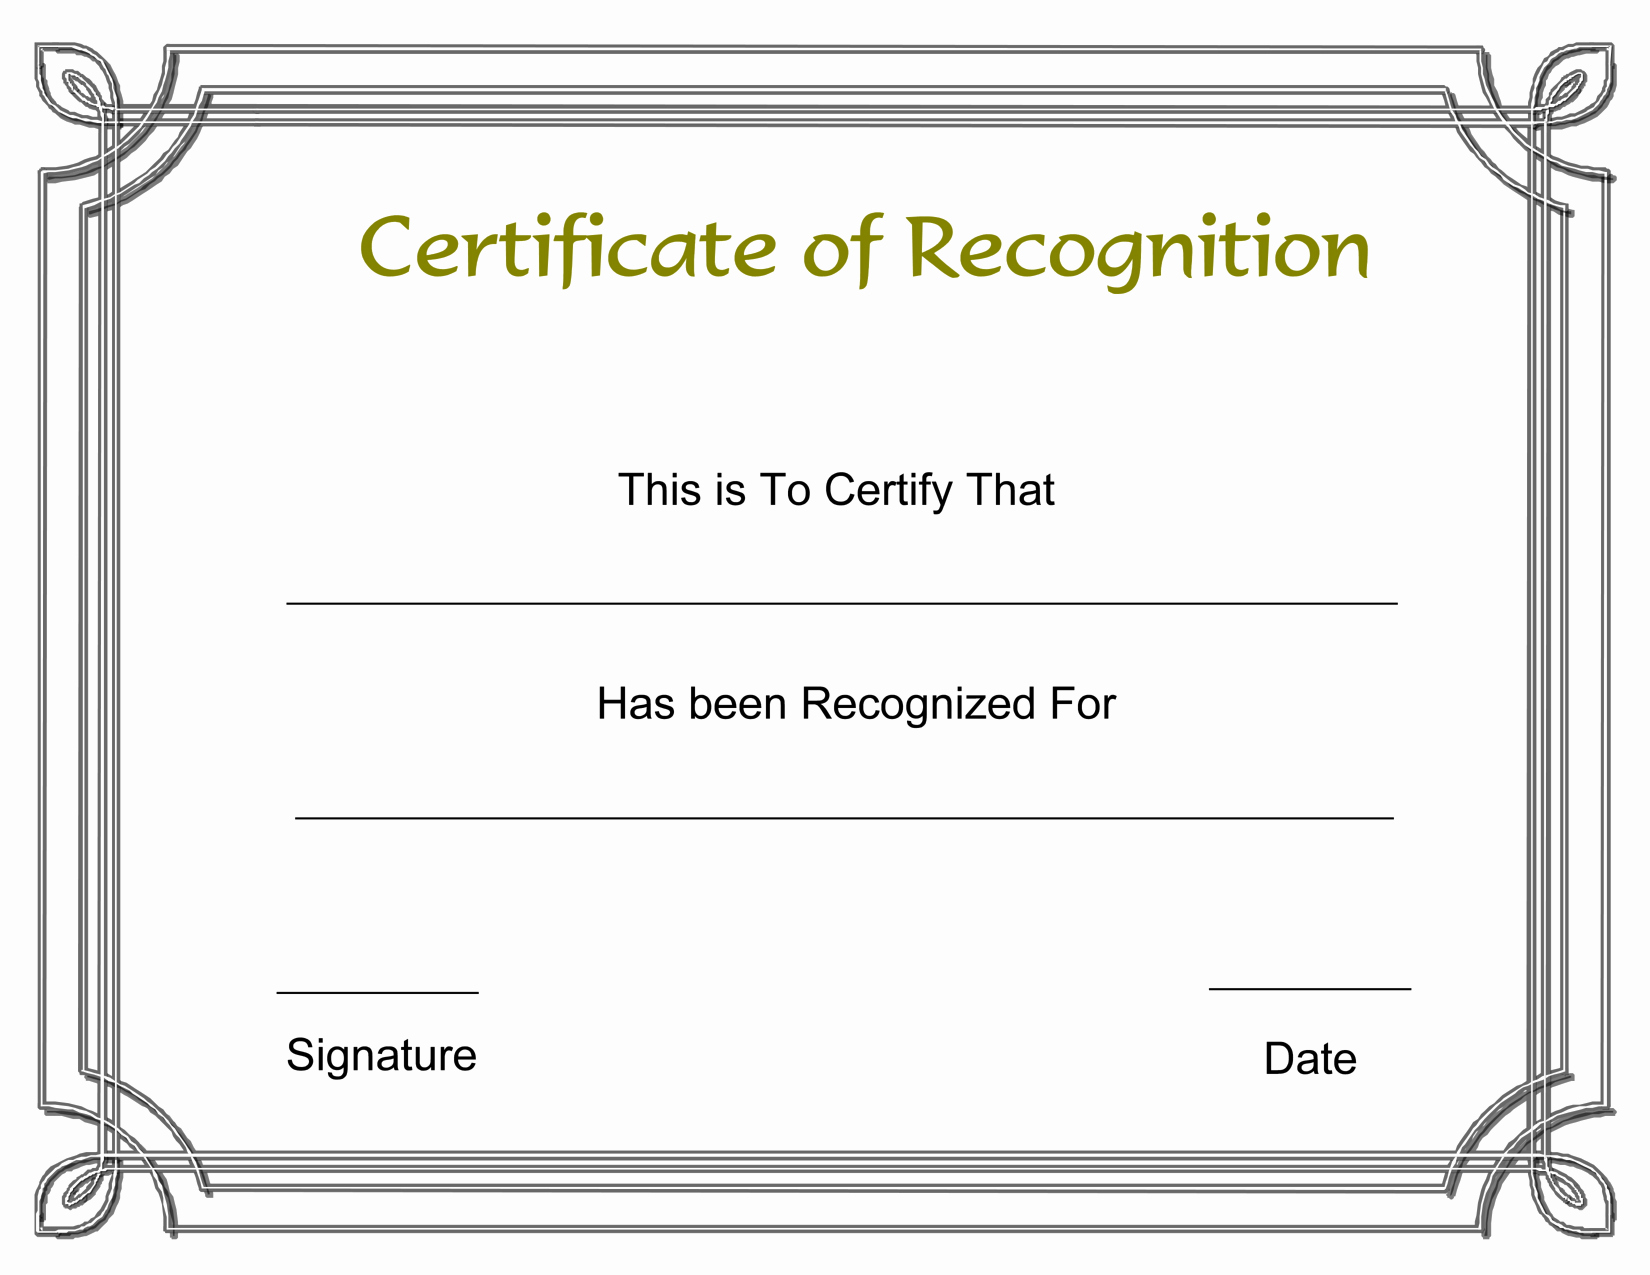 Certificate Of Recognition Editable Template Inspirational 8 Best Of Recognition Award Certificate Templates